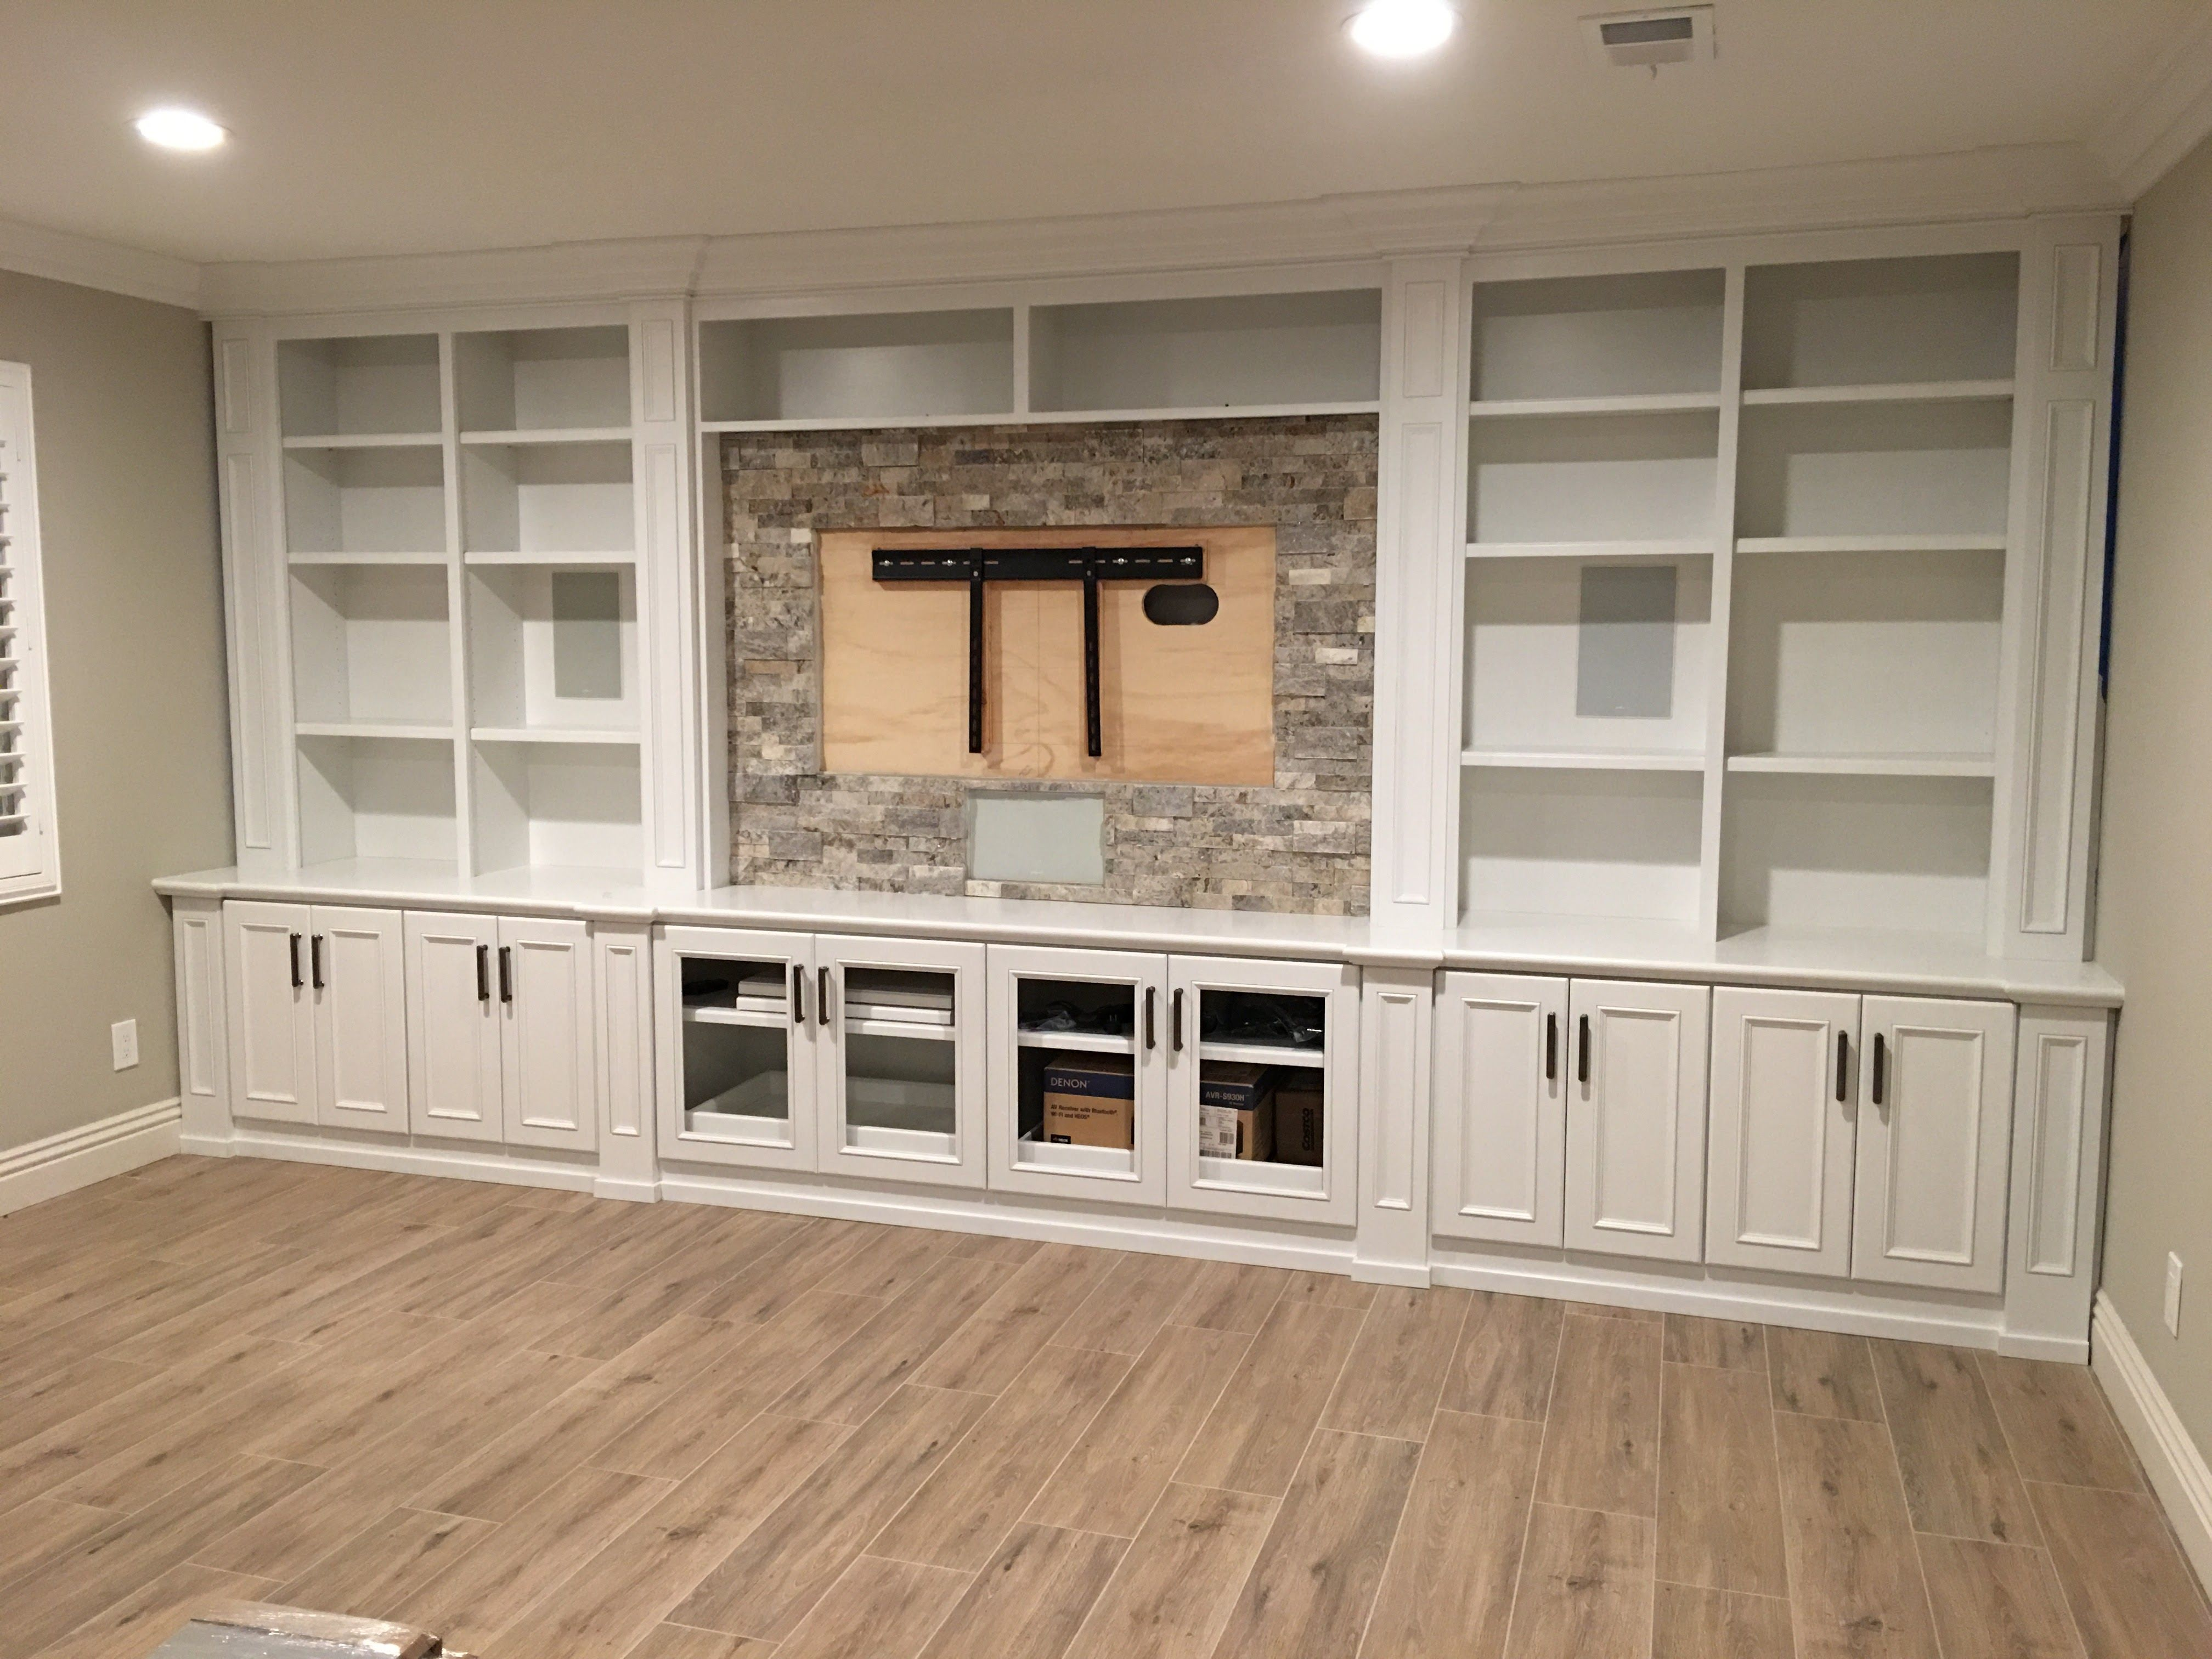 Family room tv cabinets  Wall unit in 2019  Basement family rooms Family room walls Living